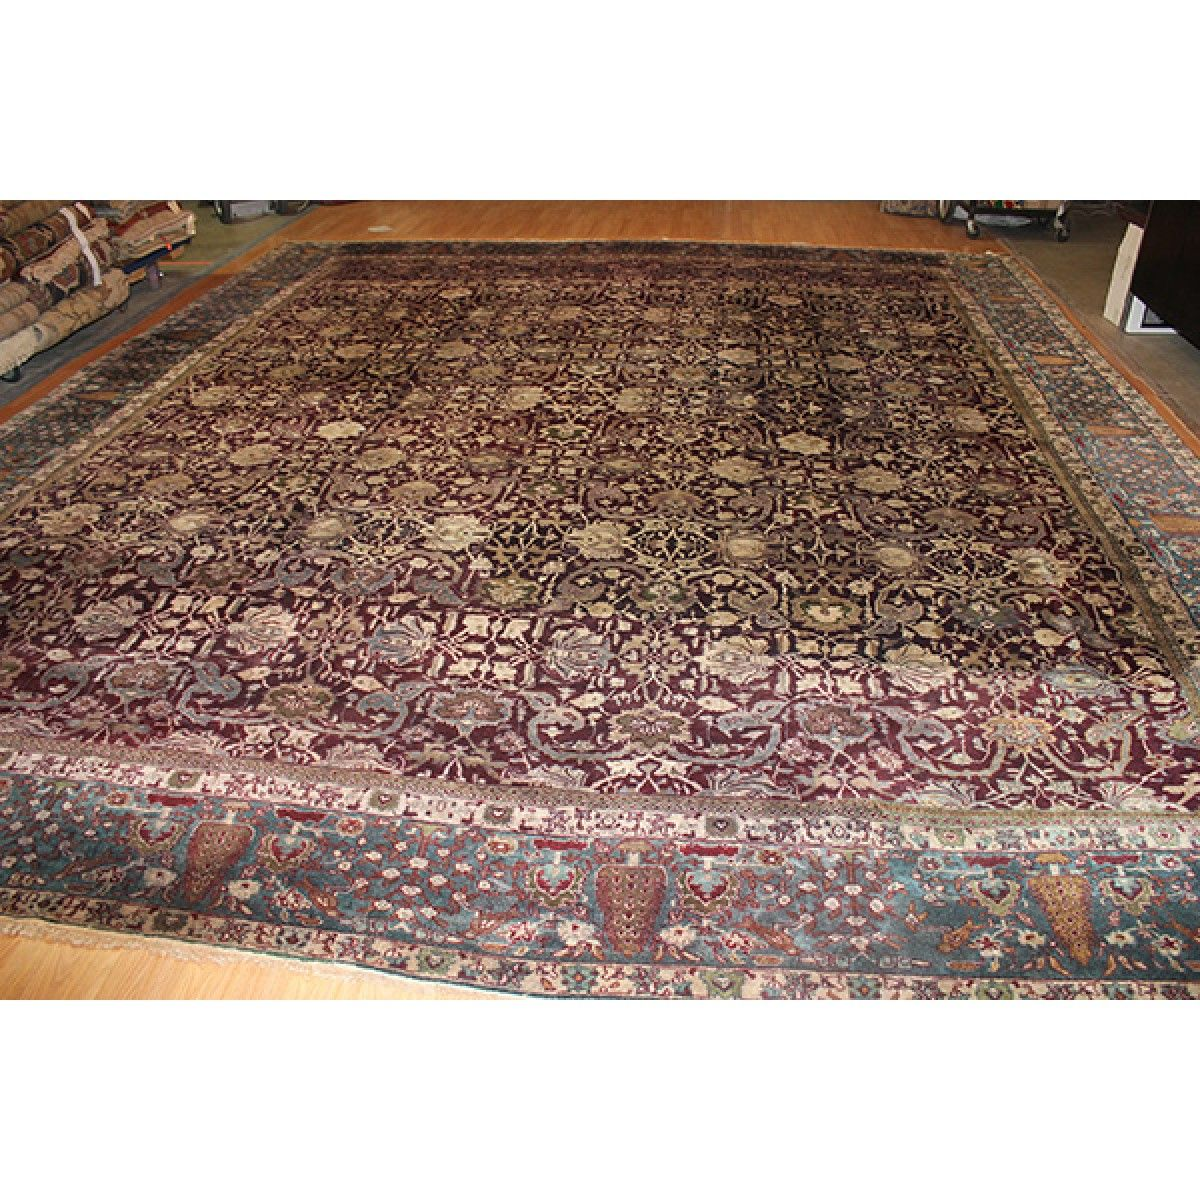 Antique Agra 14 7 X16 10 India Oriental Area Rug